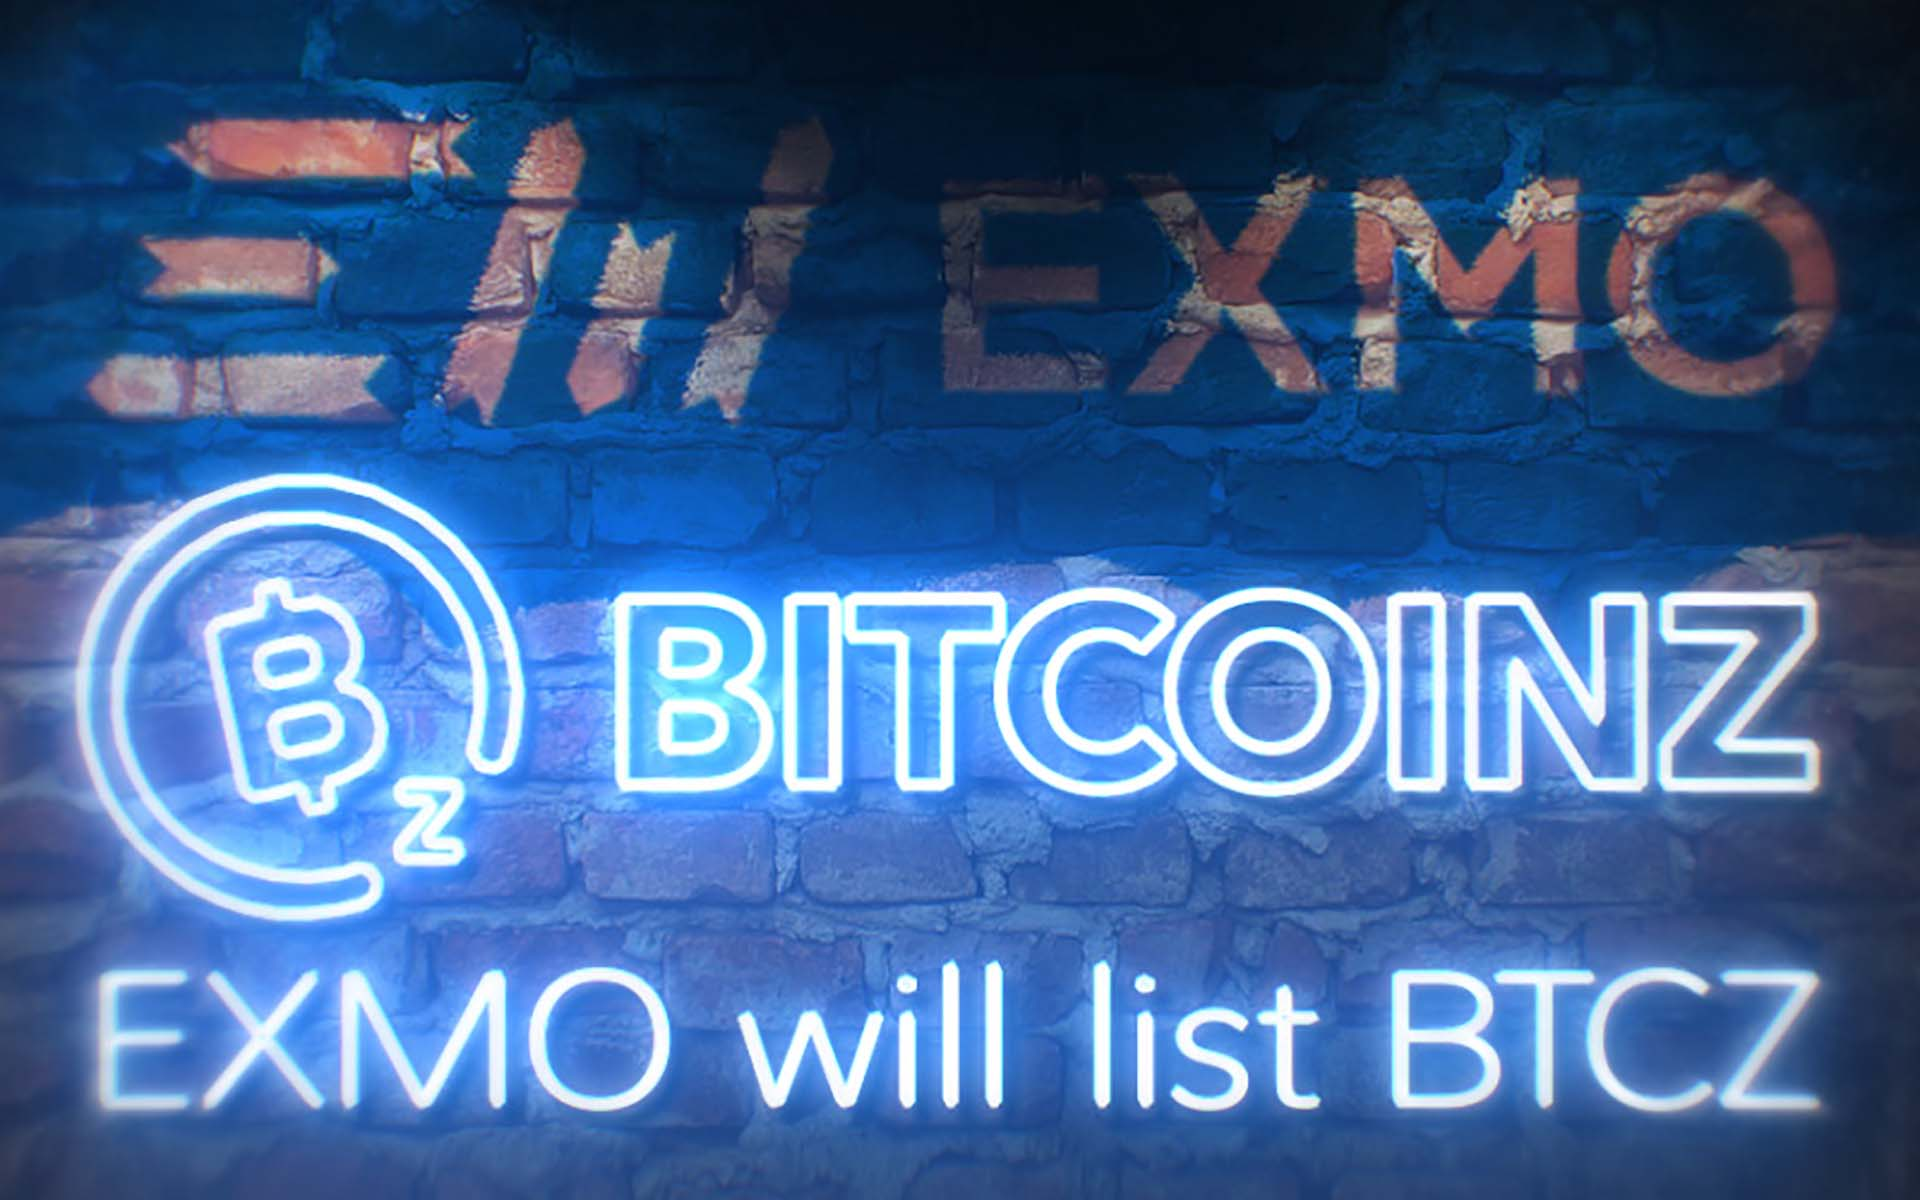 BTCz is Listed on EXMO - #1 Exchange in Eastern Europe